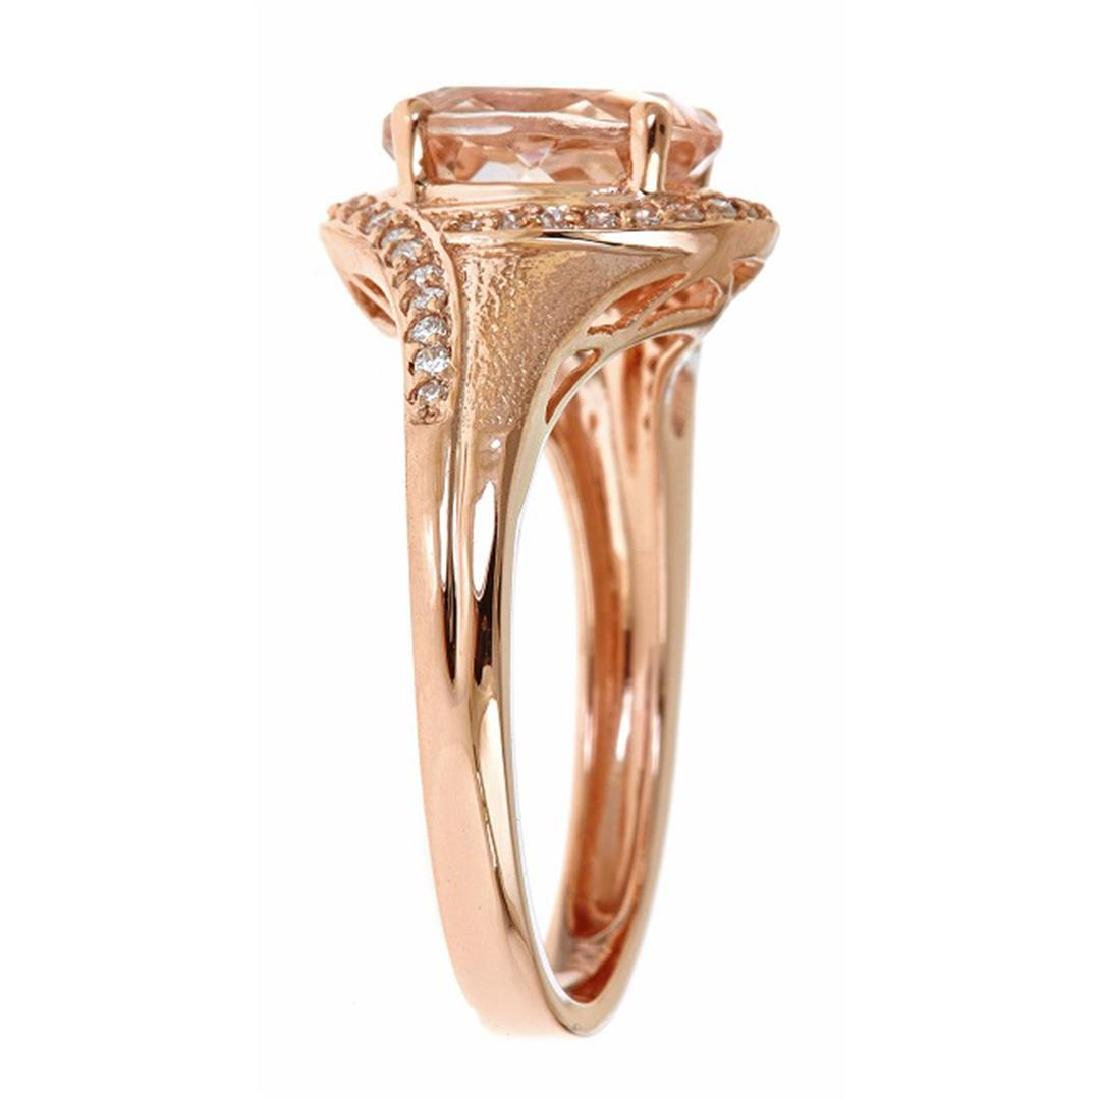 1.54 ctw Morganite and Diamond Ring - 10KT Rose Gold - 2